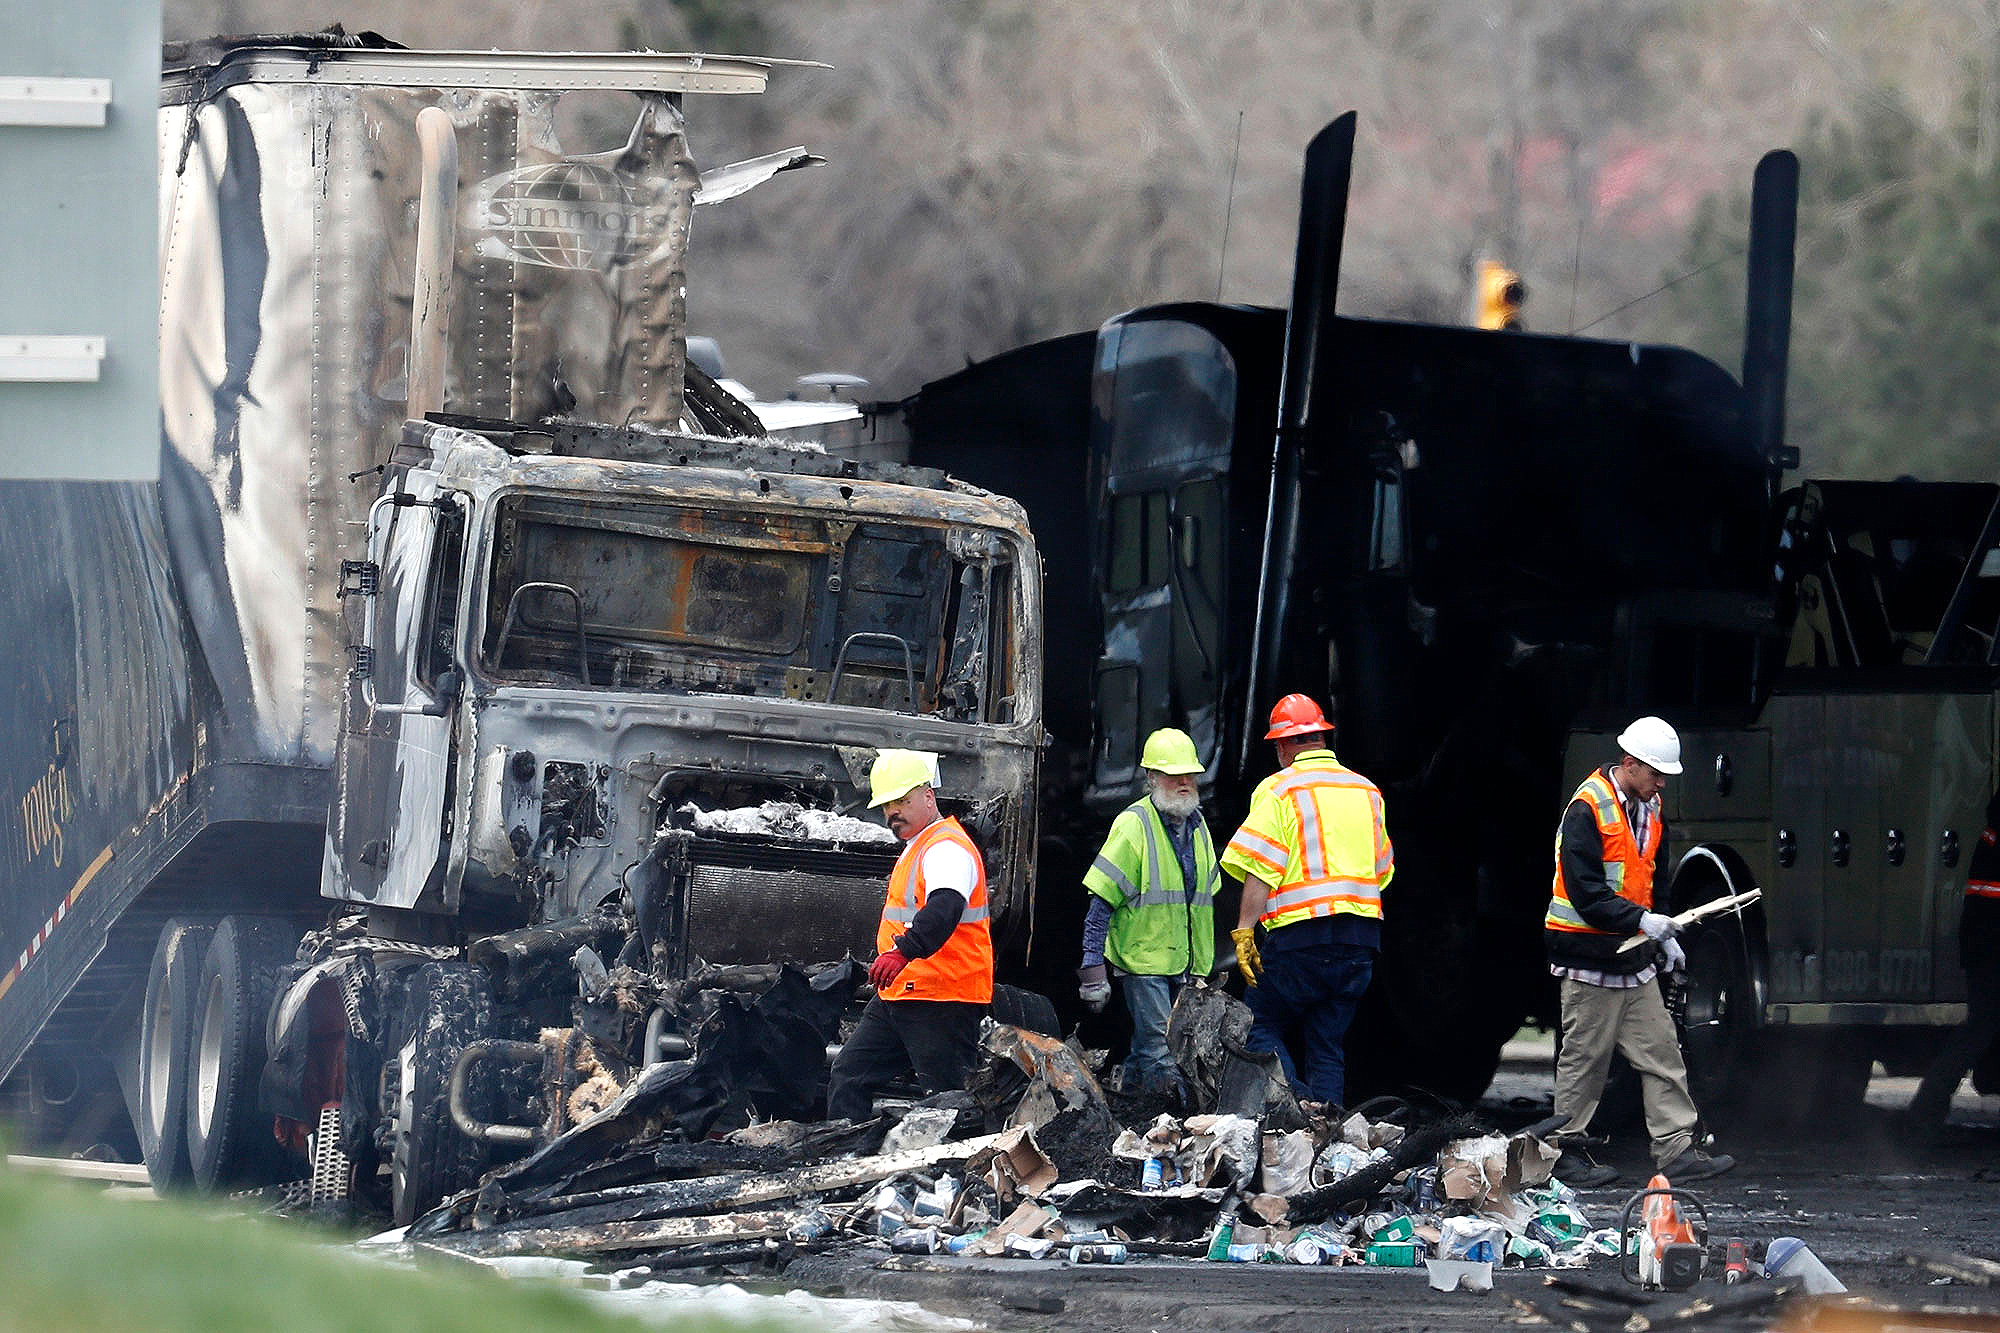 "Workers clear debris from the eastbound lanes of Interstate 70 on Friday, April 26, 2019, in Lakewood, Colo., a deadly pileup involving semi-truck hauling lumber on Thursday. Lakewood police spokesman John Romero described it as a chain reaction of crashes and explosions from ruptured gas tanks. ""It was crash, crash, crash and explosion, explosion, explosion,"" he said."